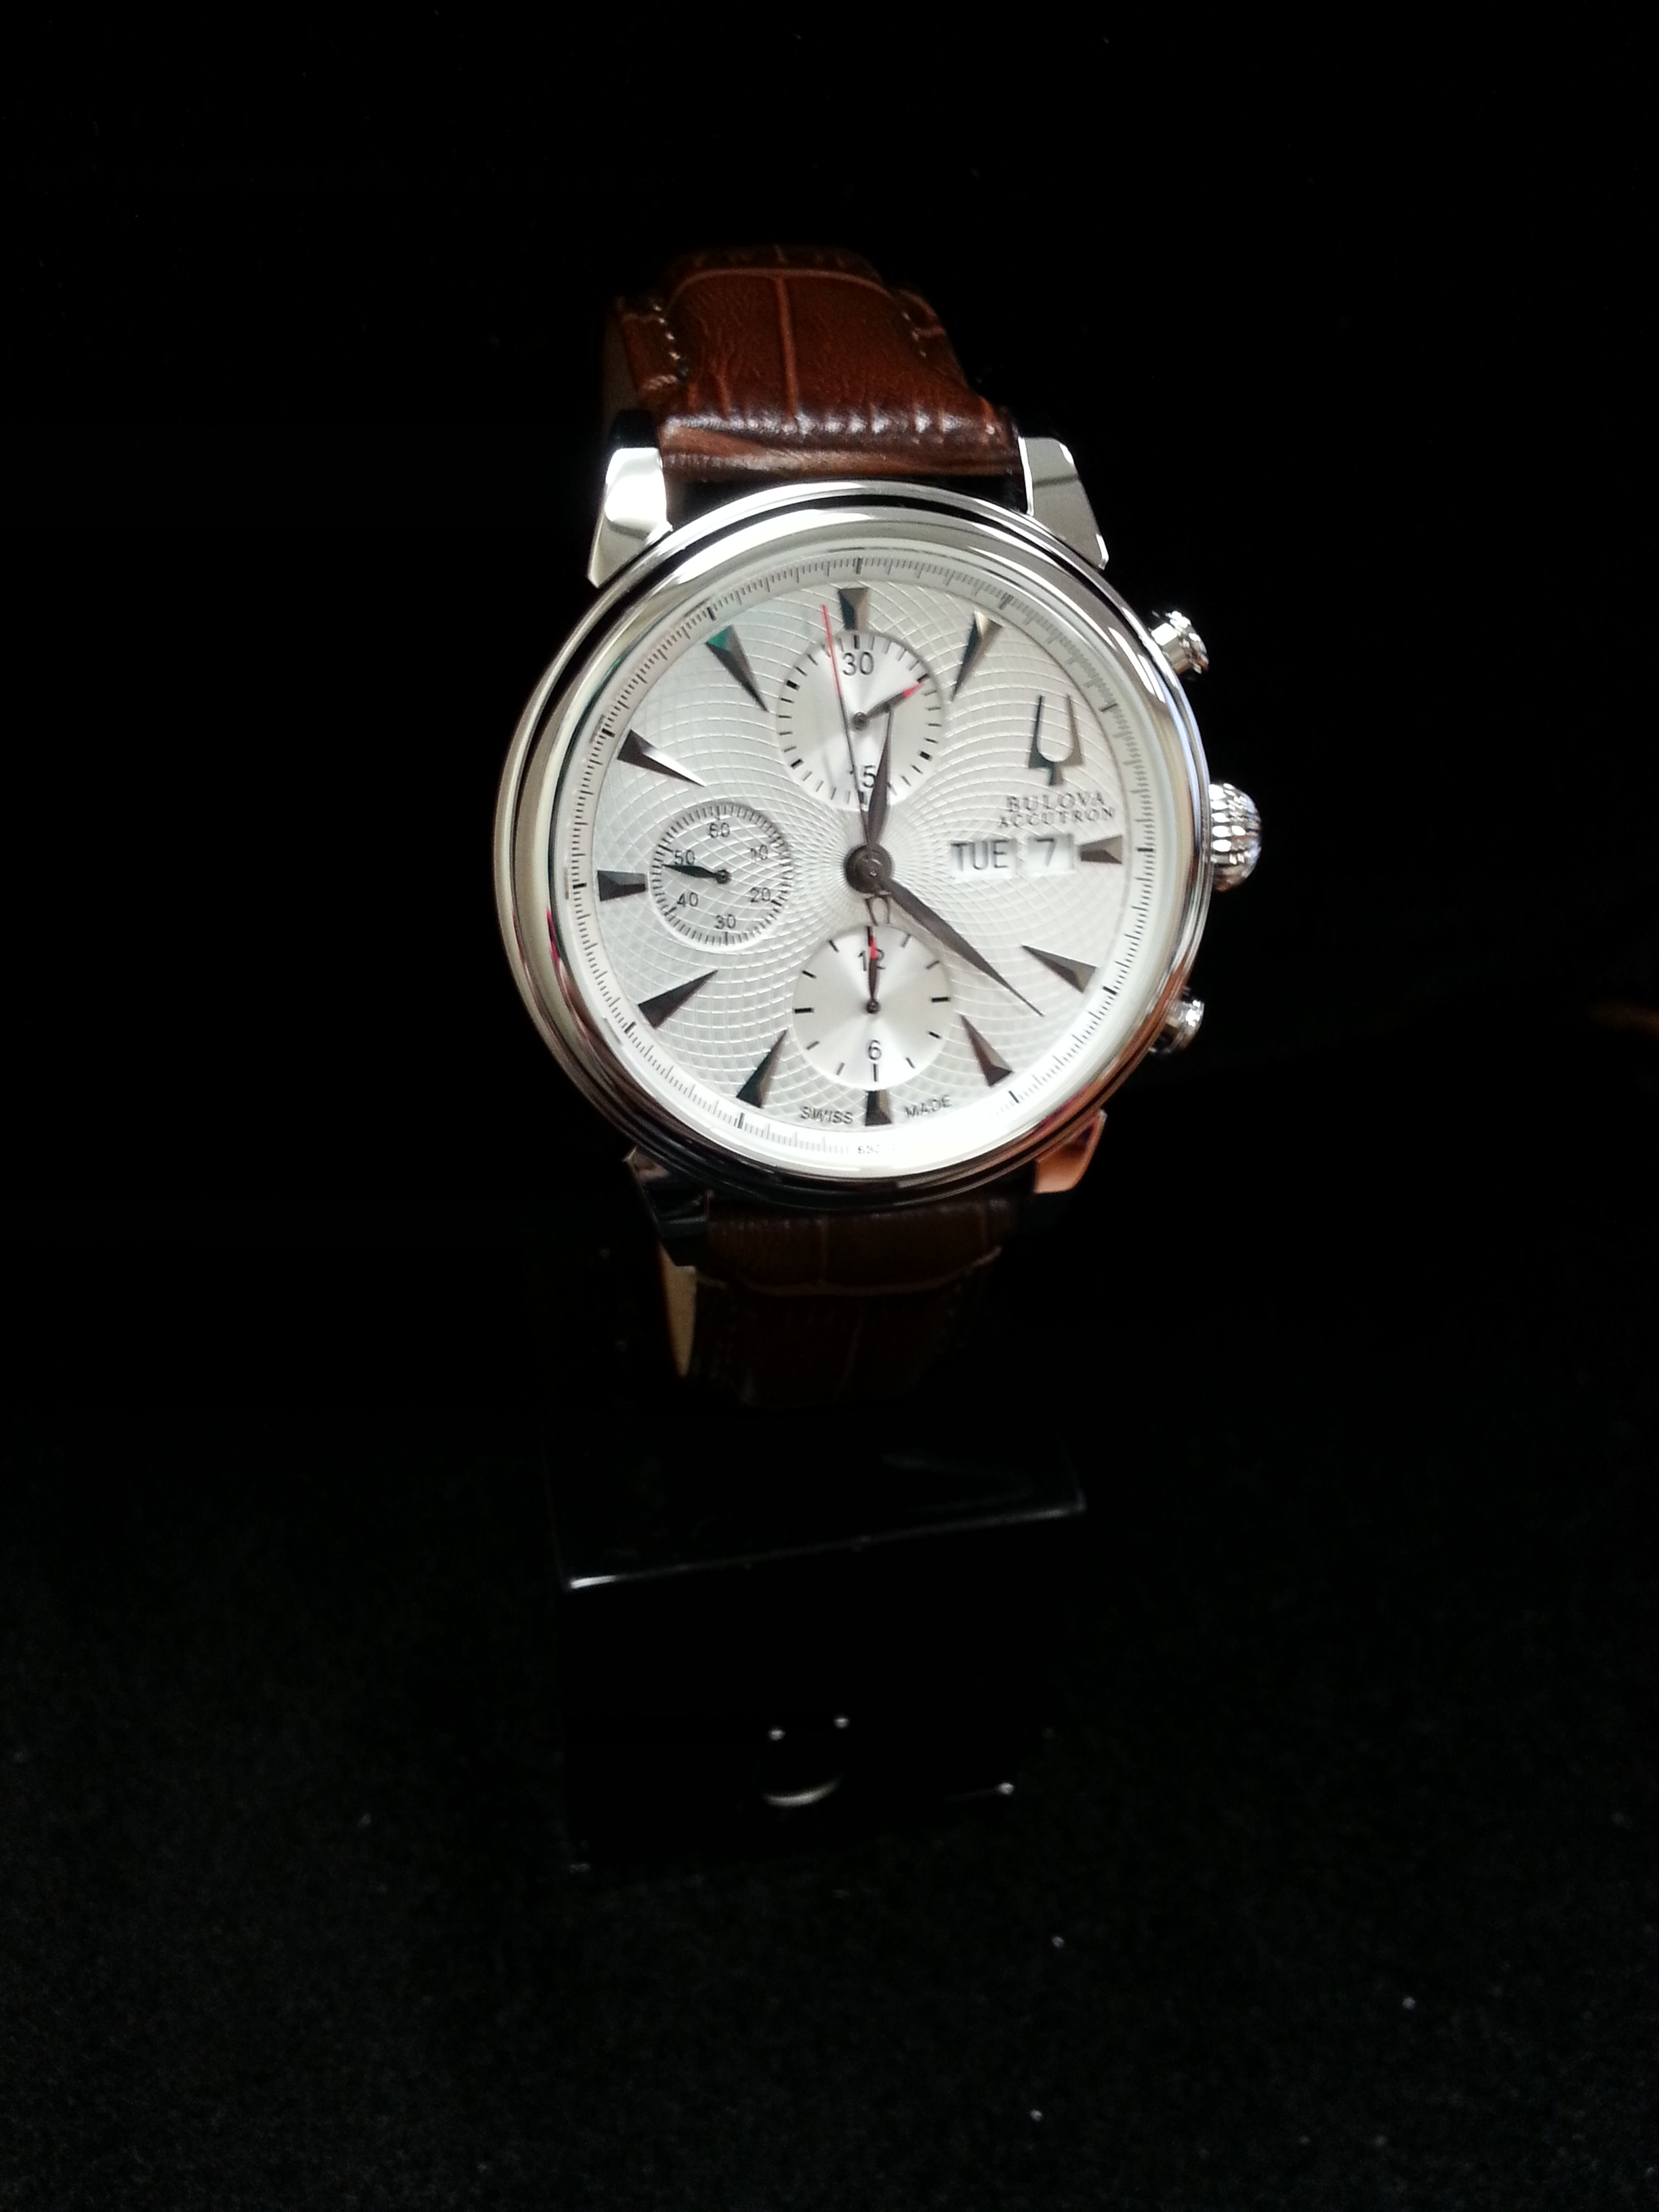 Bulova Mens Watch: Gent's Stainless Steel Bulova Accutron Gemini Valjoux Chronograph Automatic with Silver Dial on Brown Leather Strap.